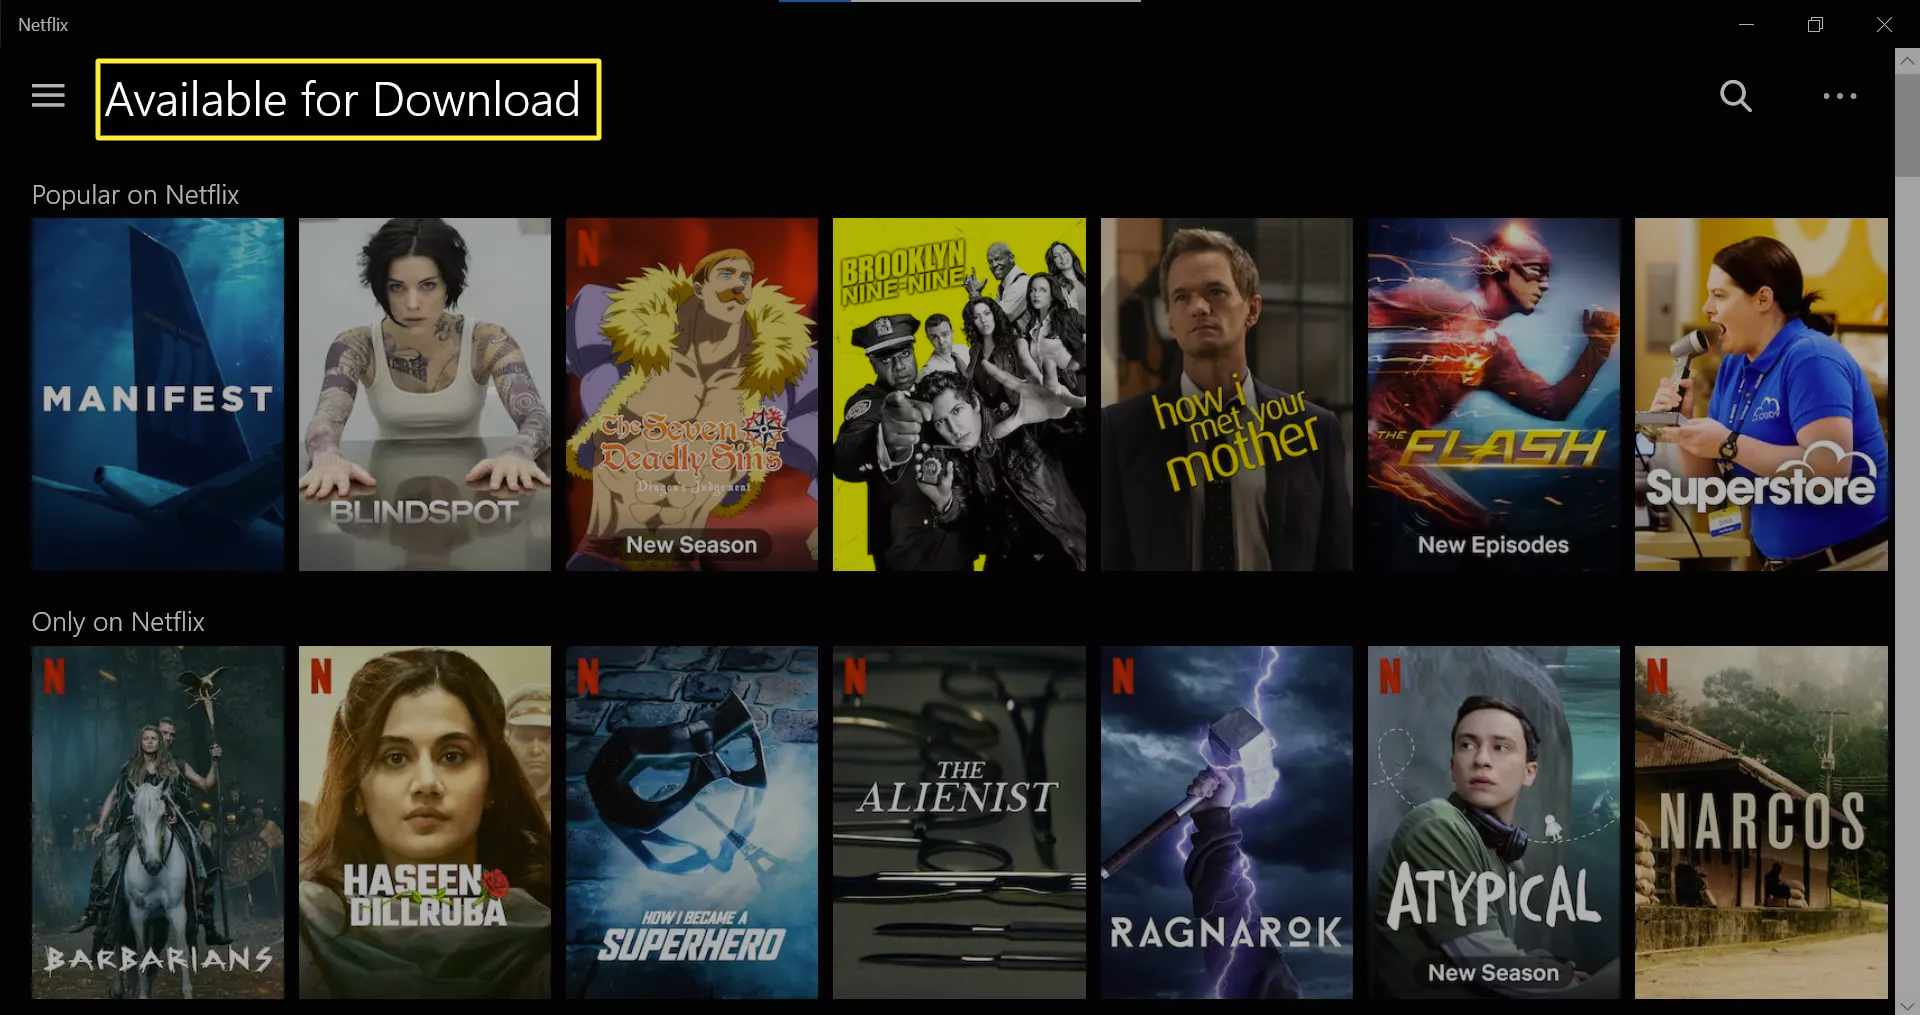 Available for Download menu in Netflix Windows app.